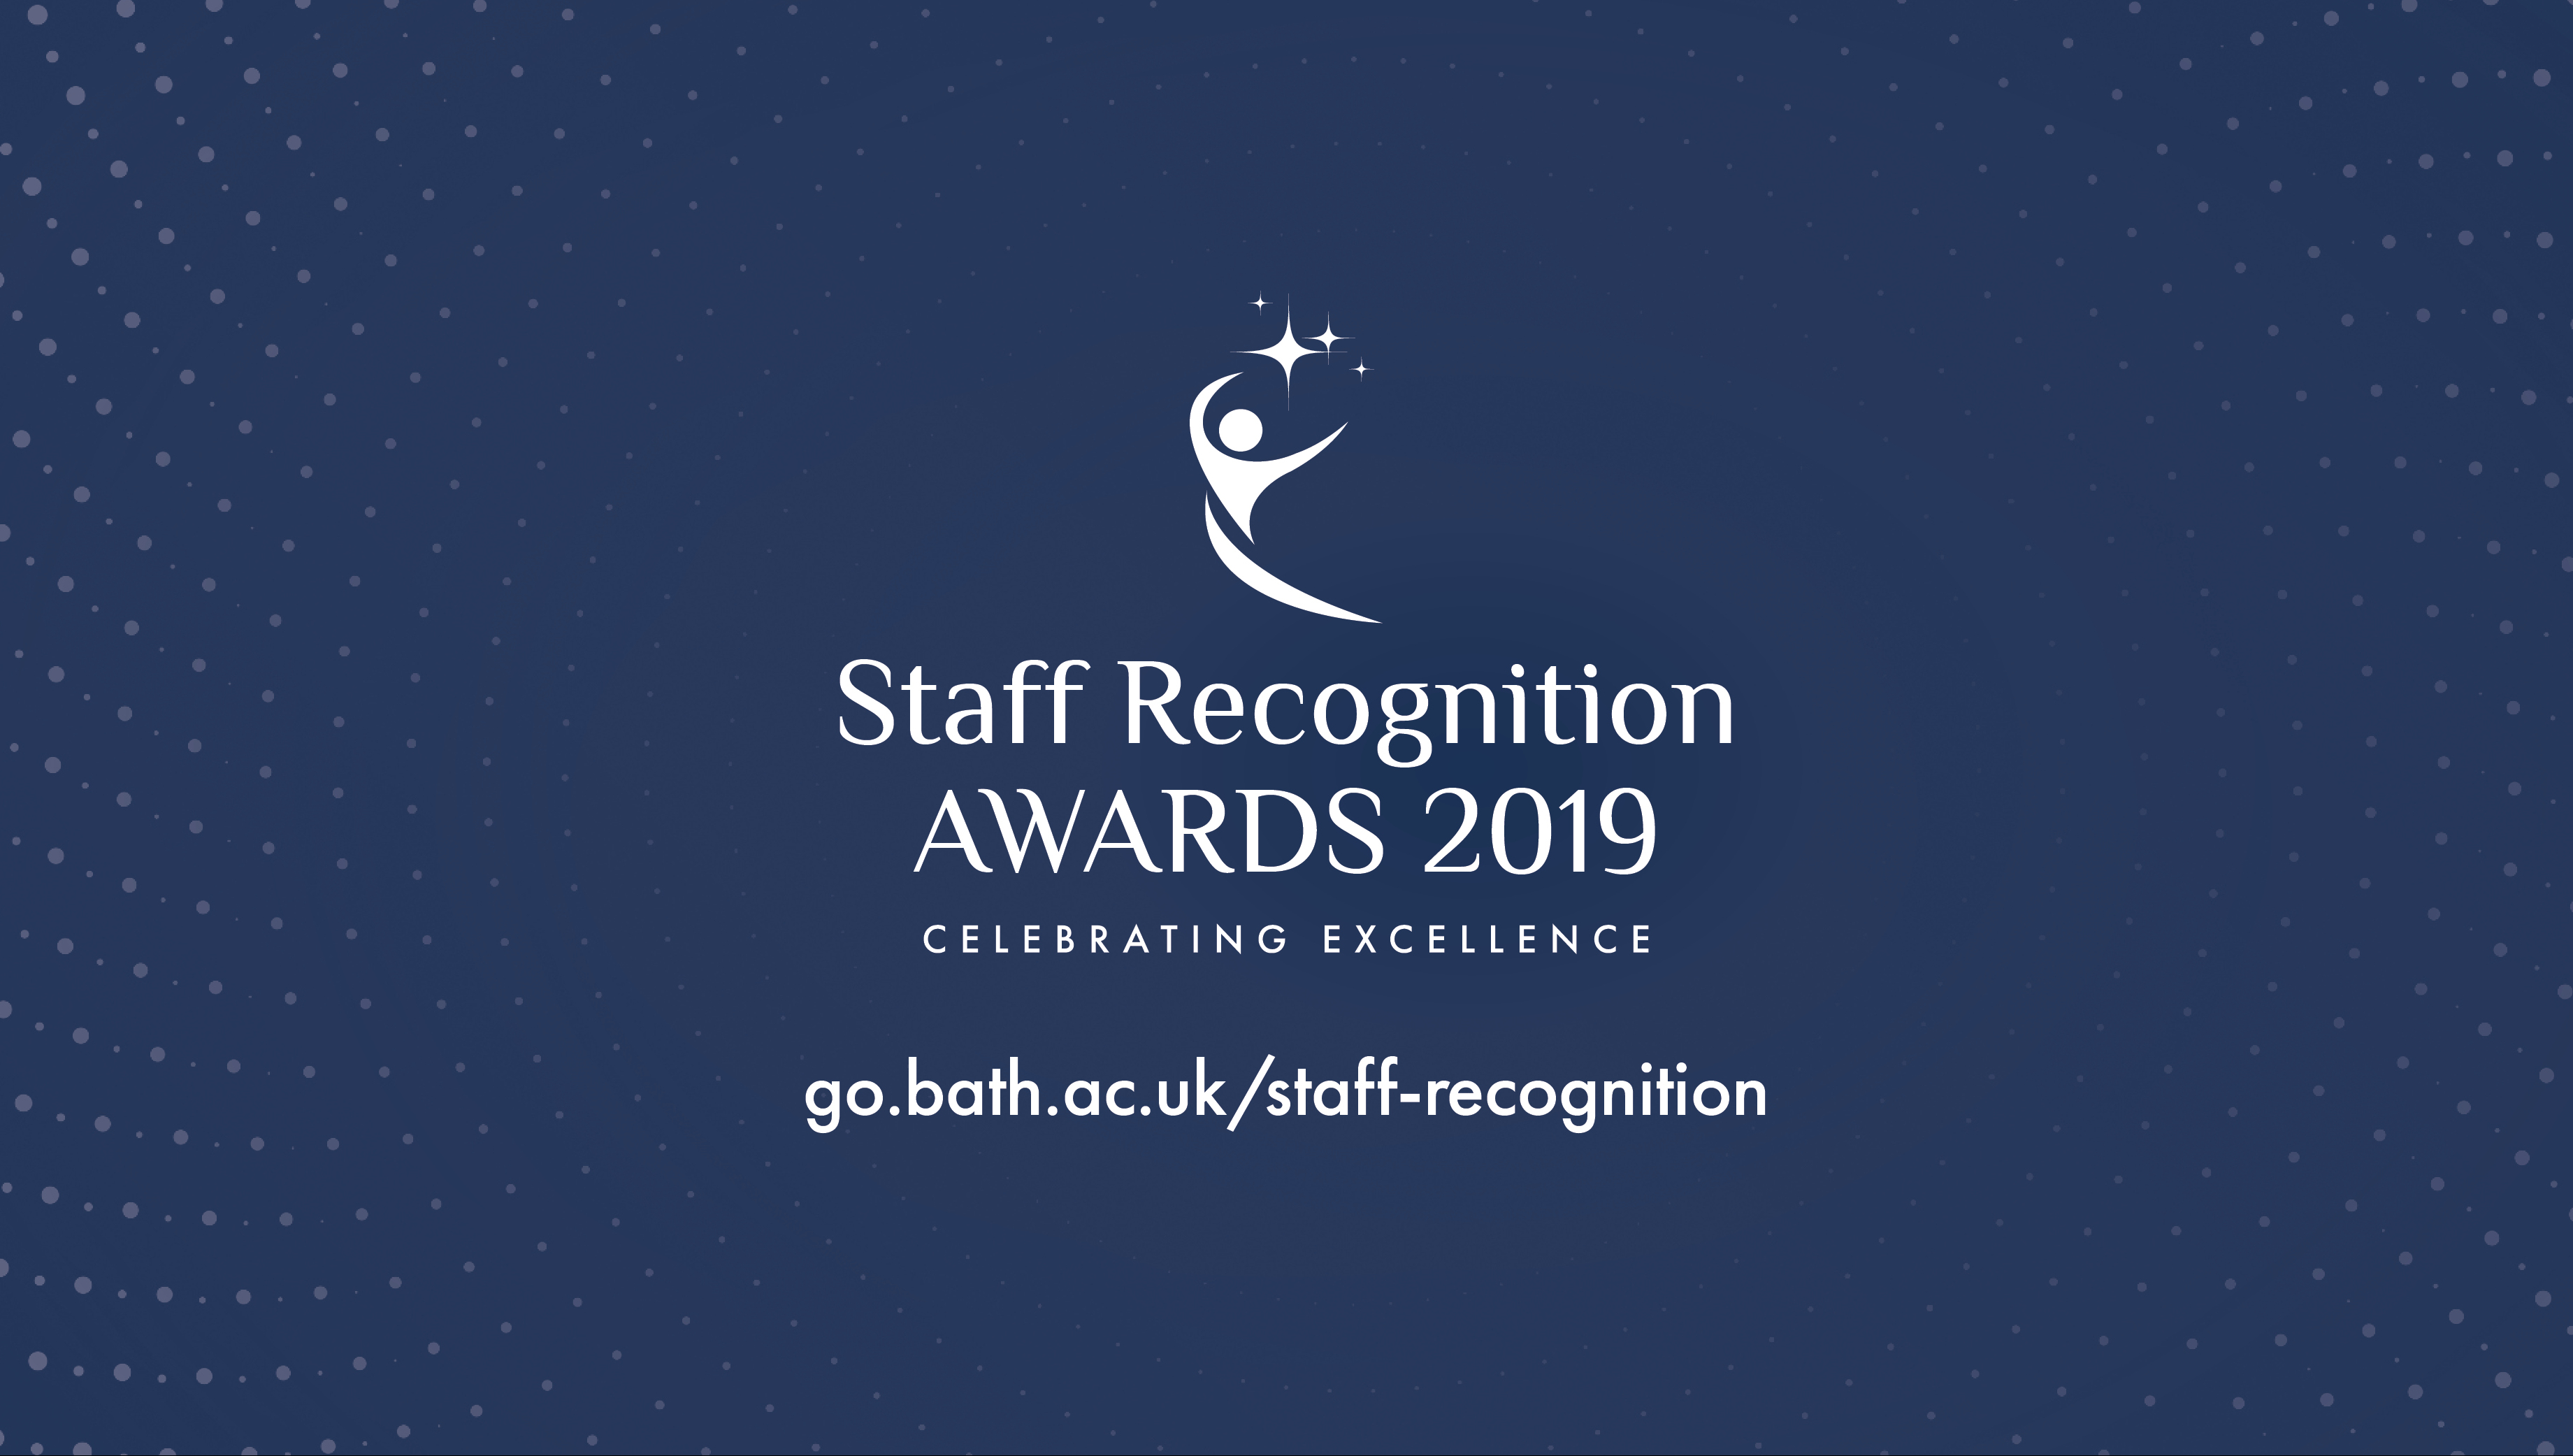 Staff Recognition Awards logo